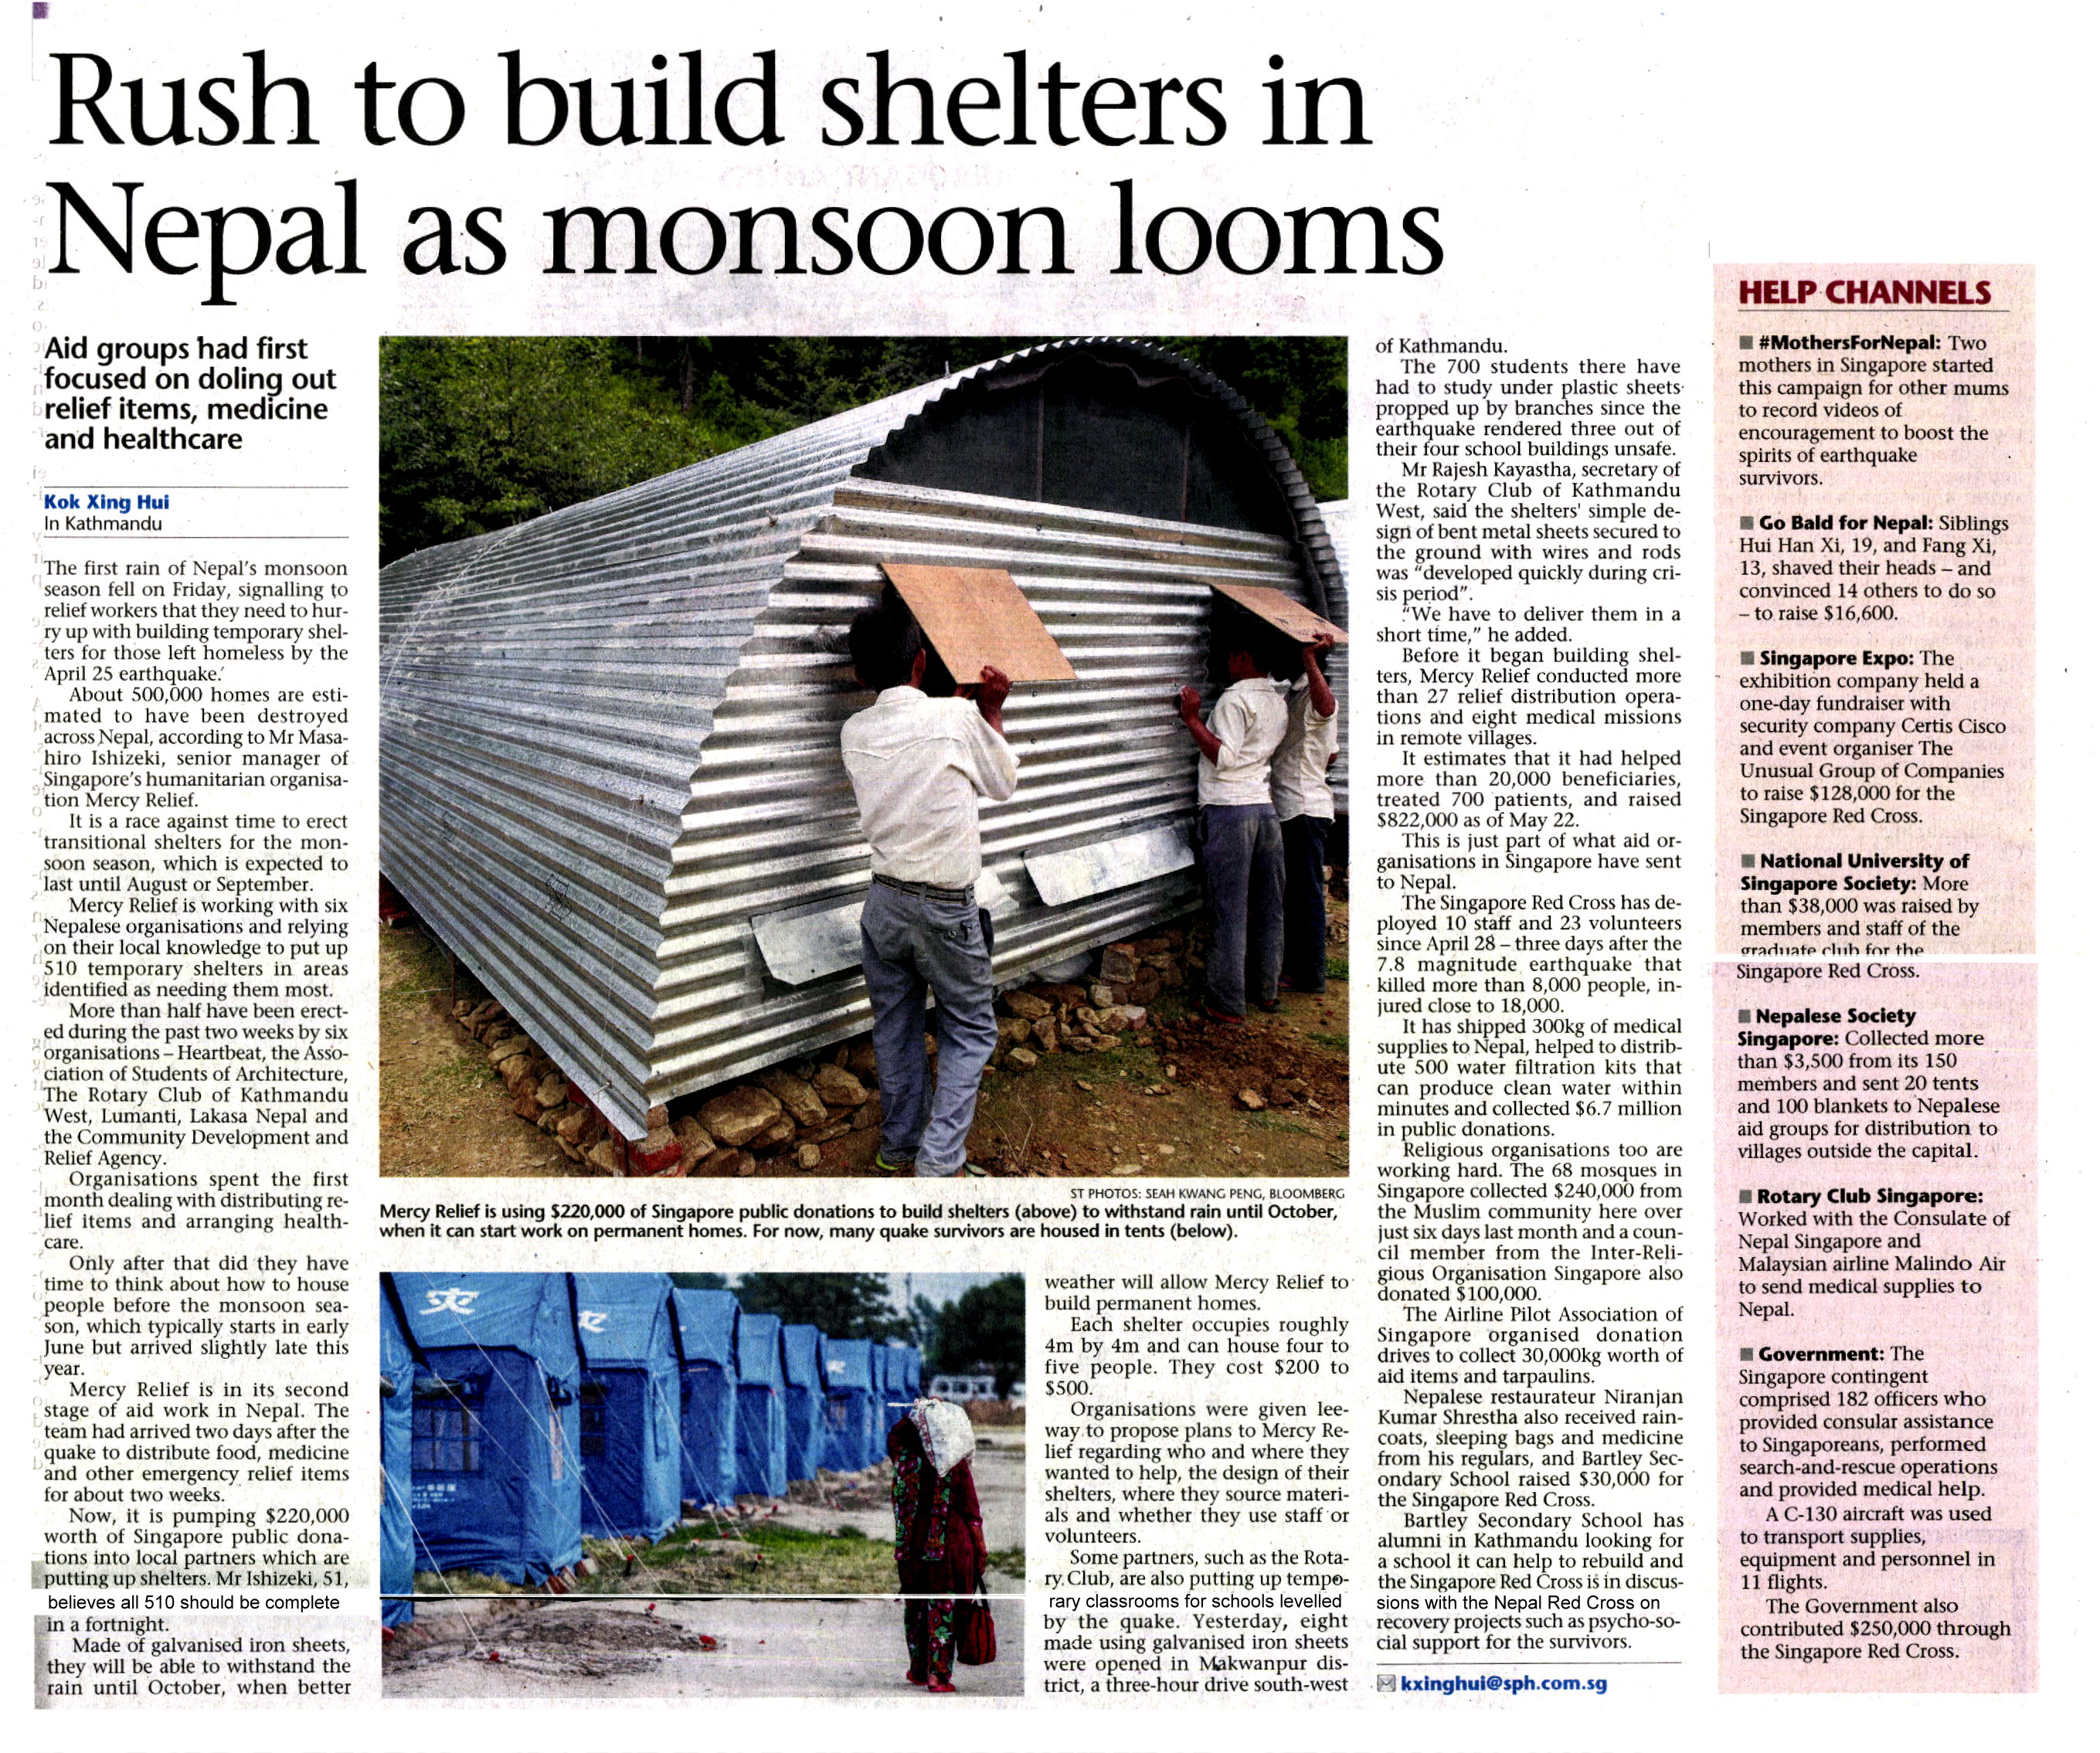 20150621_N65_STS_HM_16_FC_RUSH TO BUILD SHELTERS IN NEPAL AS MONSOON LOOMS